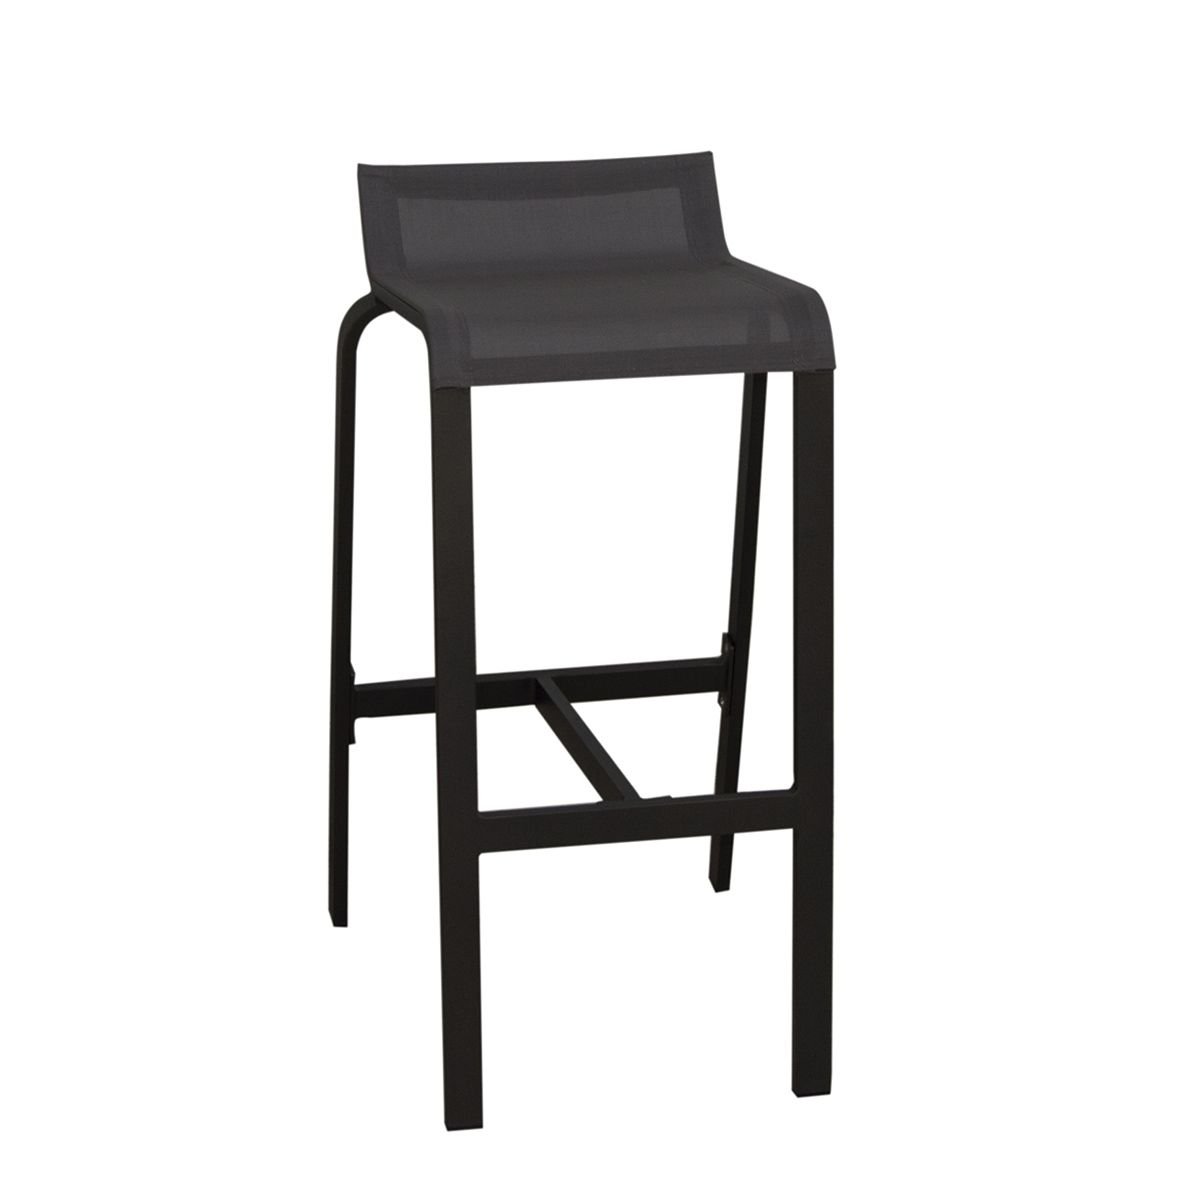 tabouret aluminium jardin terrasse luis tresi zendart. Black Bedroom Furniture Sets. Home Design Ideas